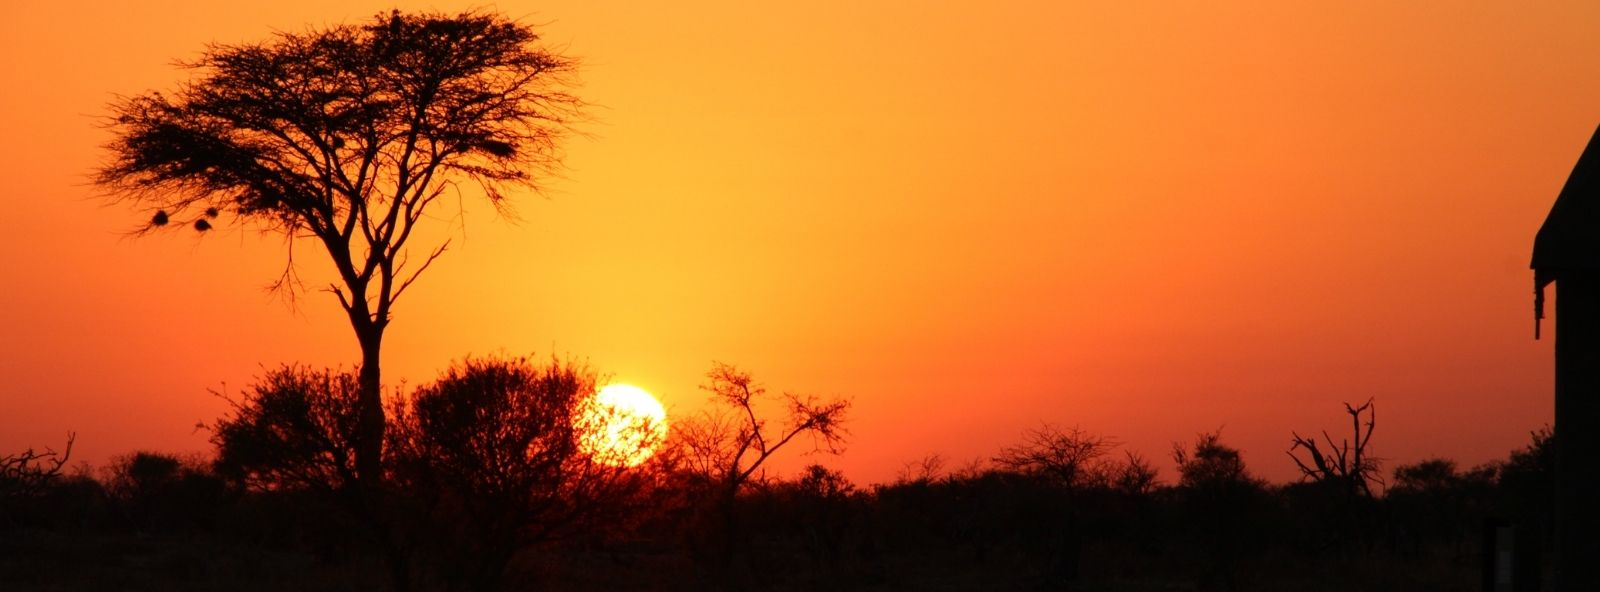 Sunset in Chobe - photograph of Acacia Tree filled with bird nest silhouetted against the setting sun behind - vast orange skies serve as background